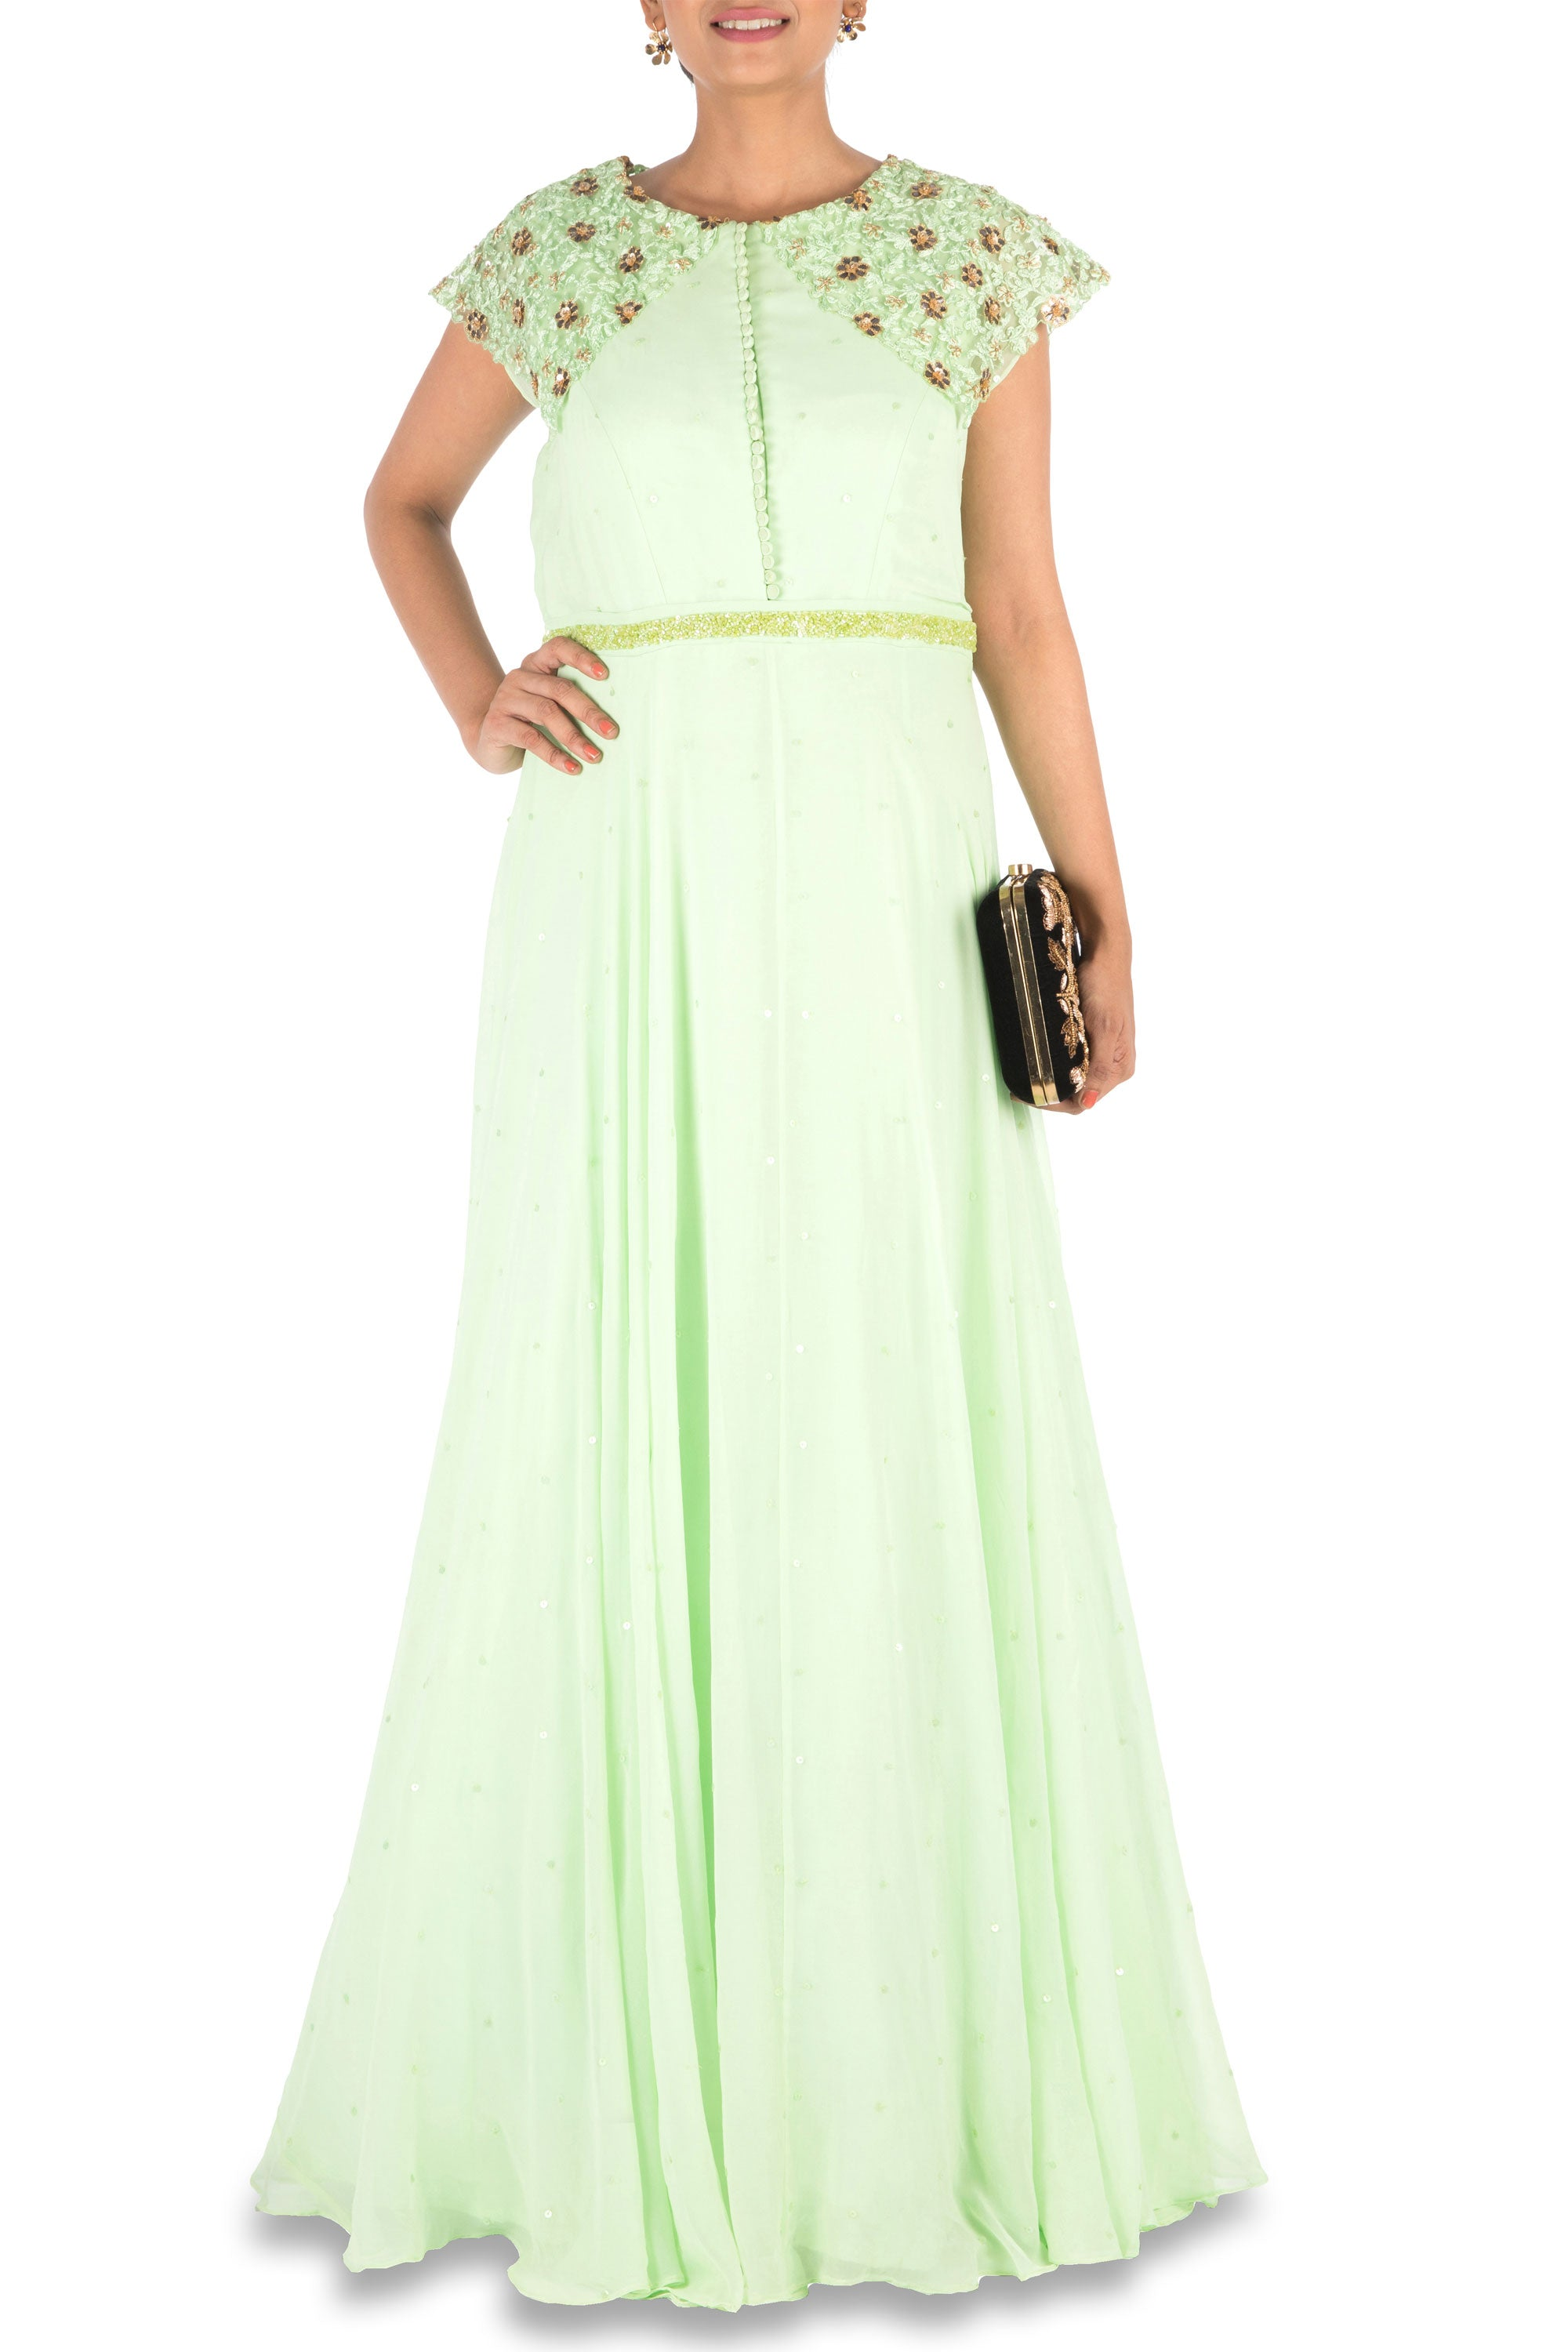 Hand Embroidered Mint Green Gown Front